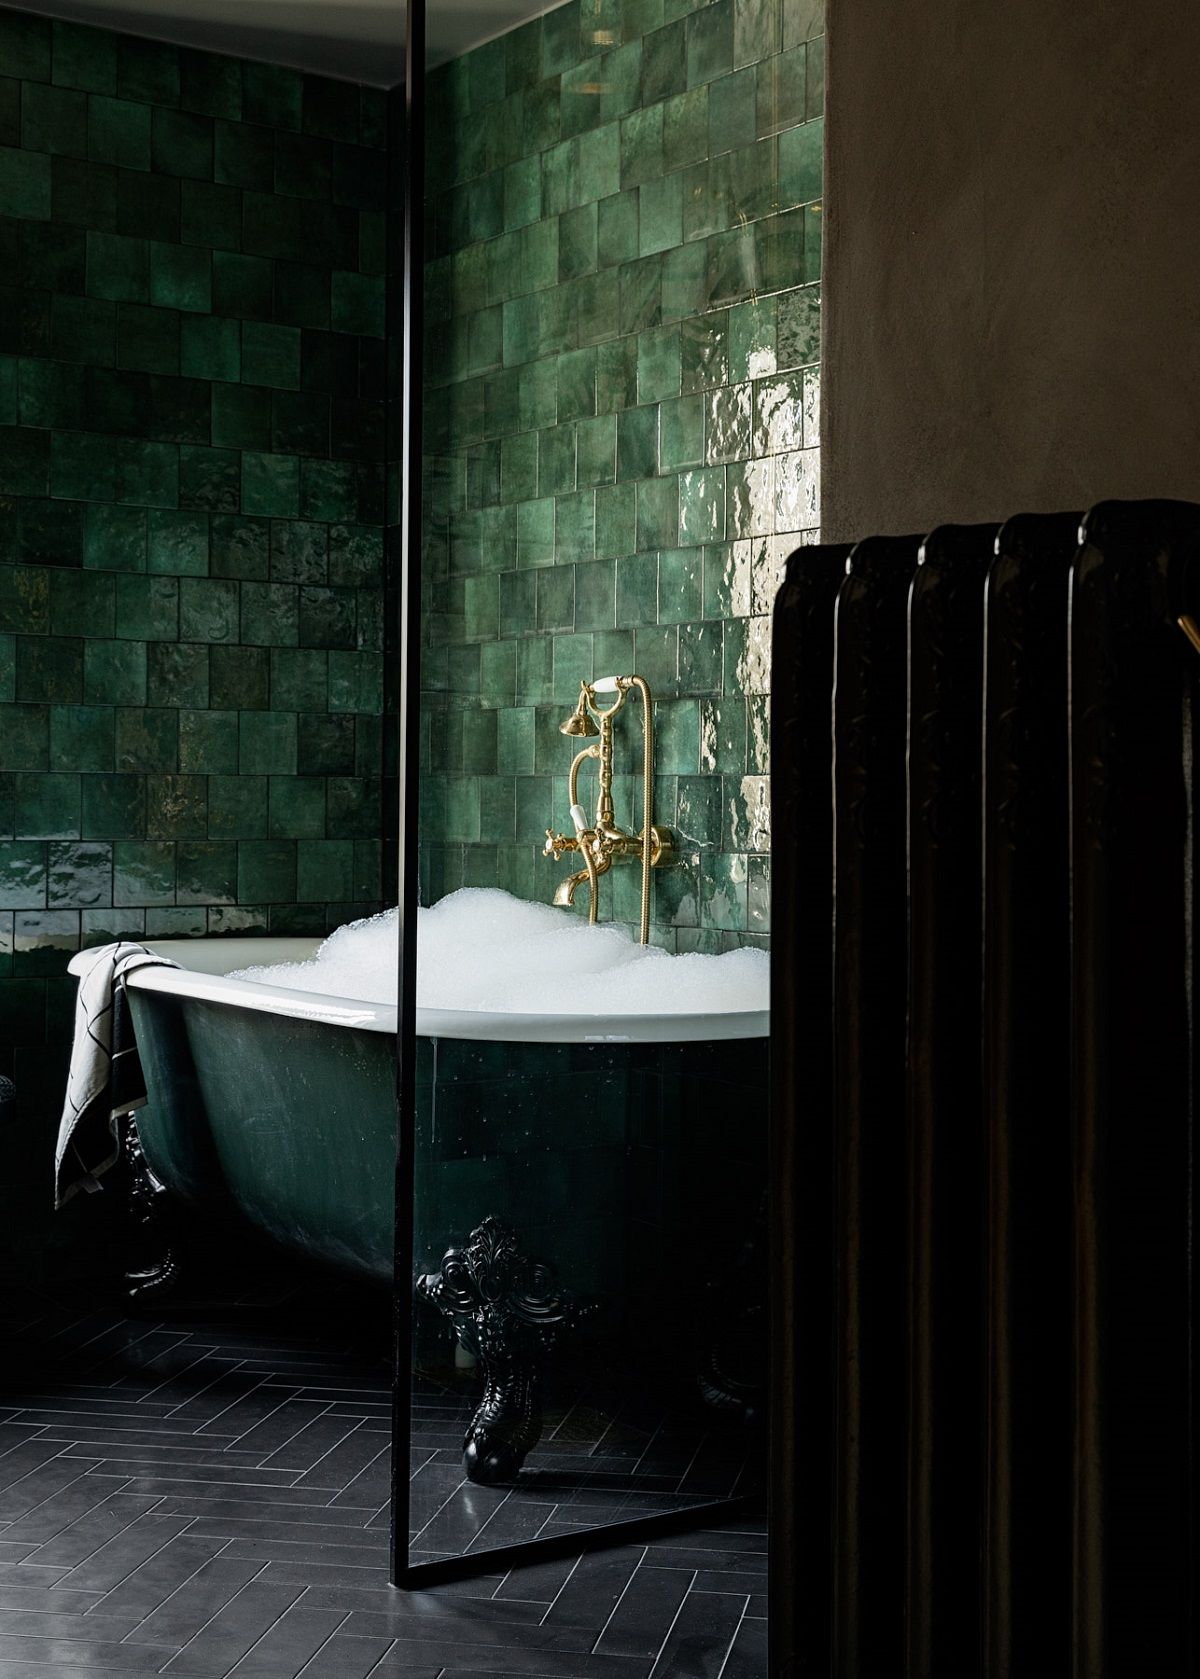 The Nordroom - An Idyllic Swedish Home In The Woods With A Stunning Green Bathroom